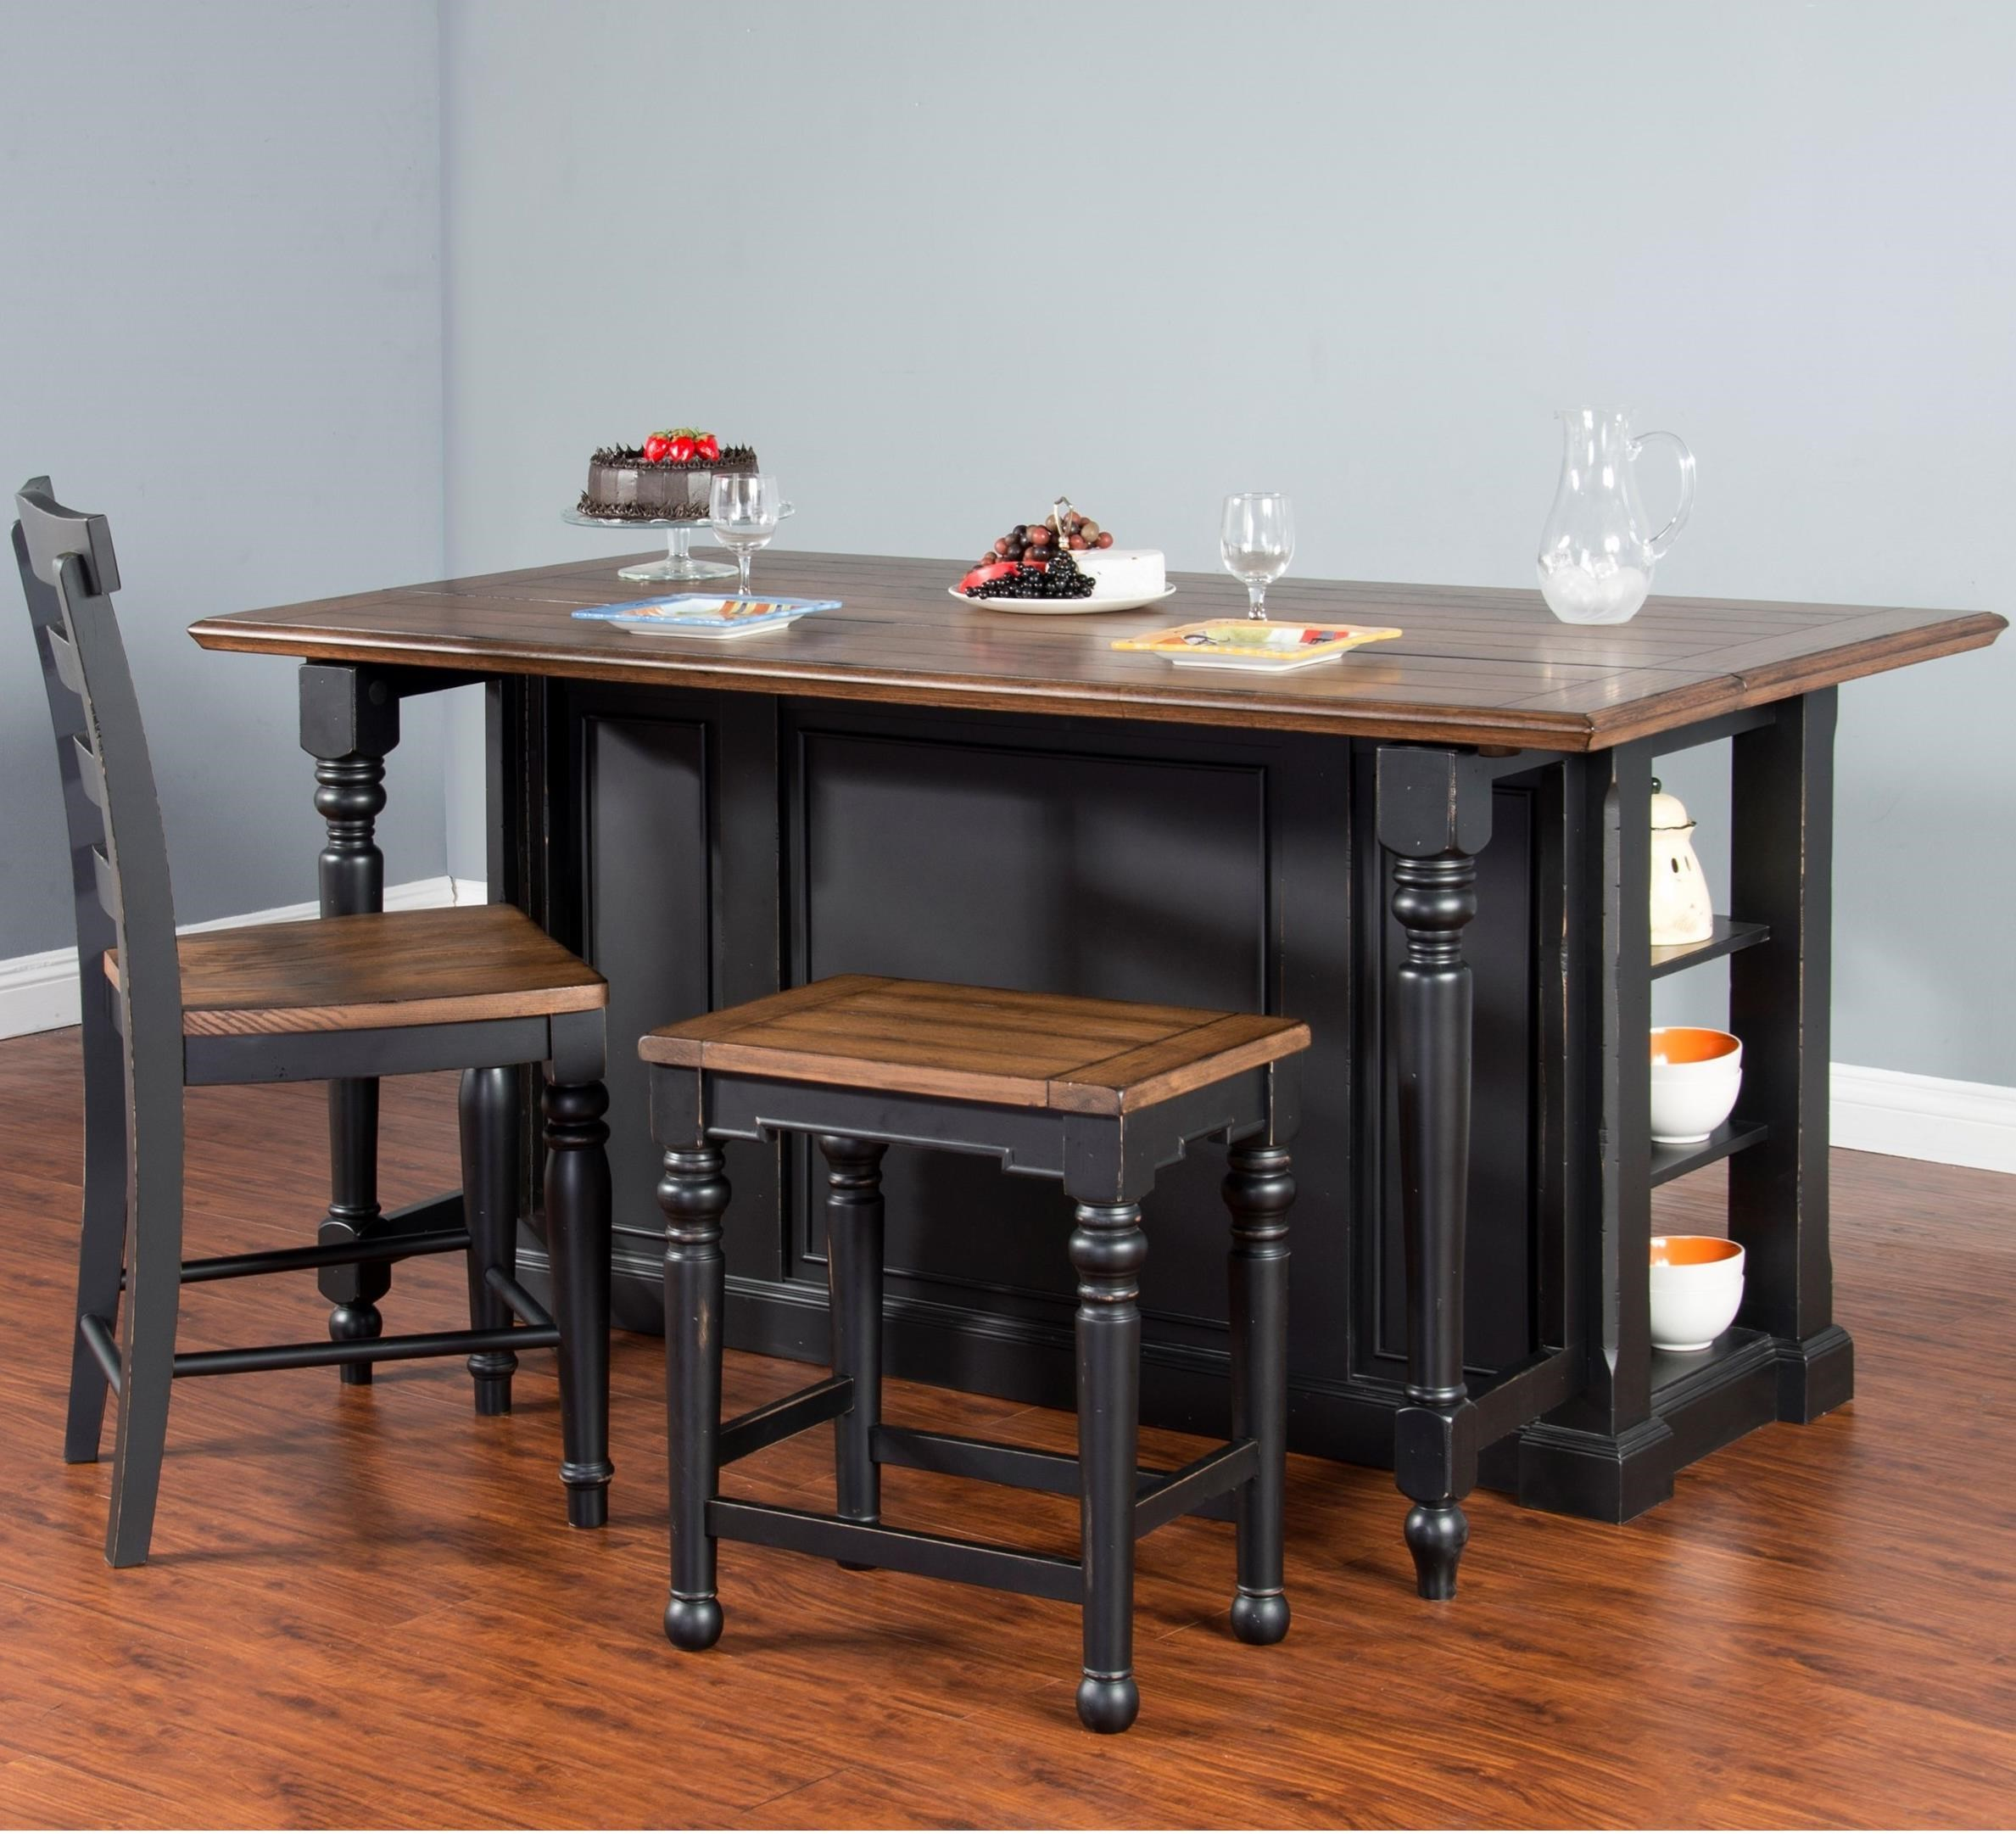 Sunny Designs Bourbon Trail 3 Piece Kitchen Island Set With Gate Leg